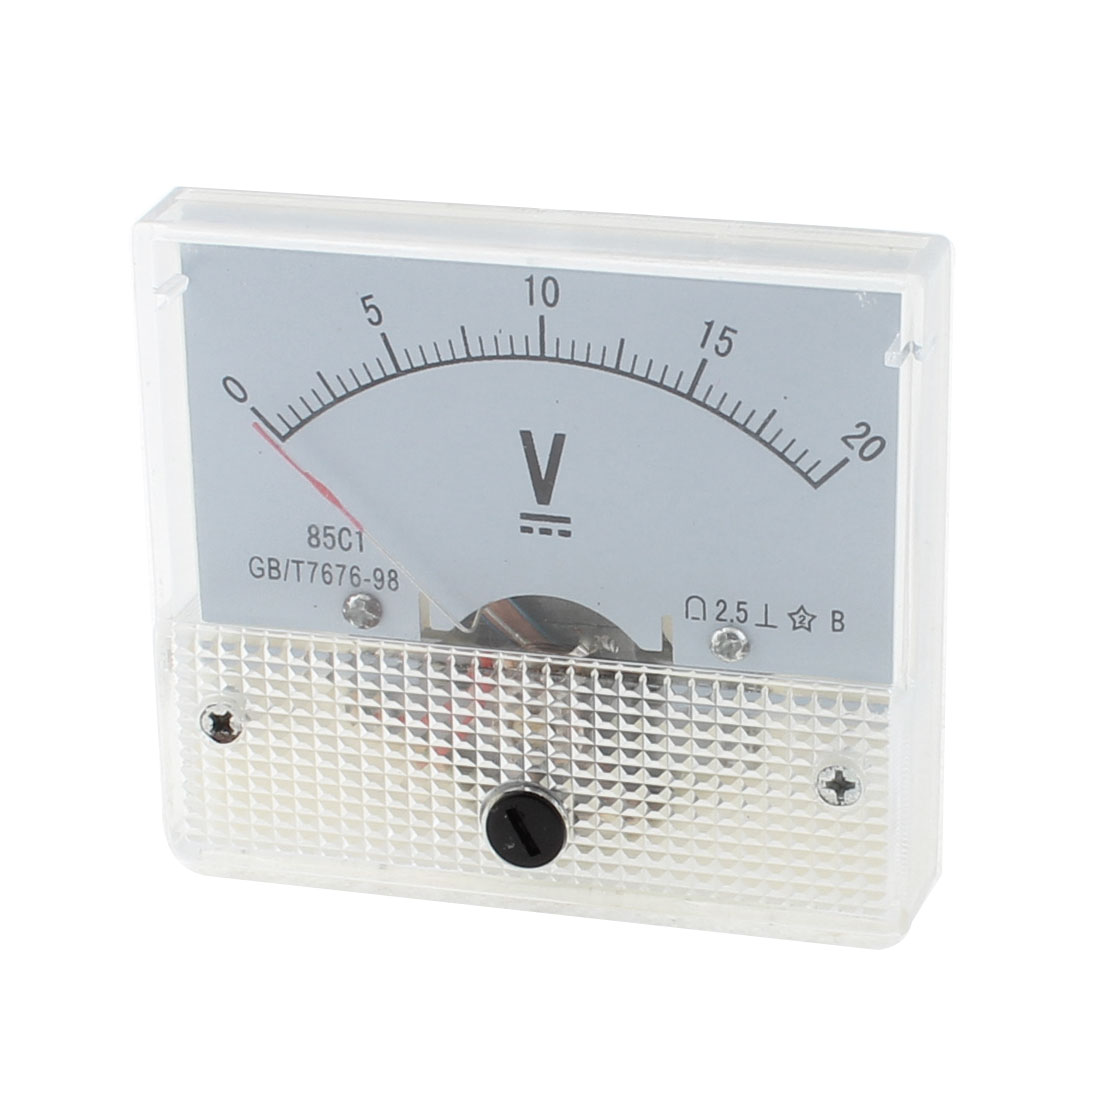 DC 0-20V Range 85L/C1-A/V Voltage Ammeter Analog Pointer Voltmeter Panel Meter Gauge